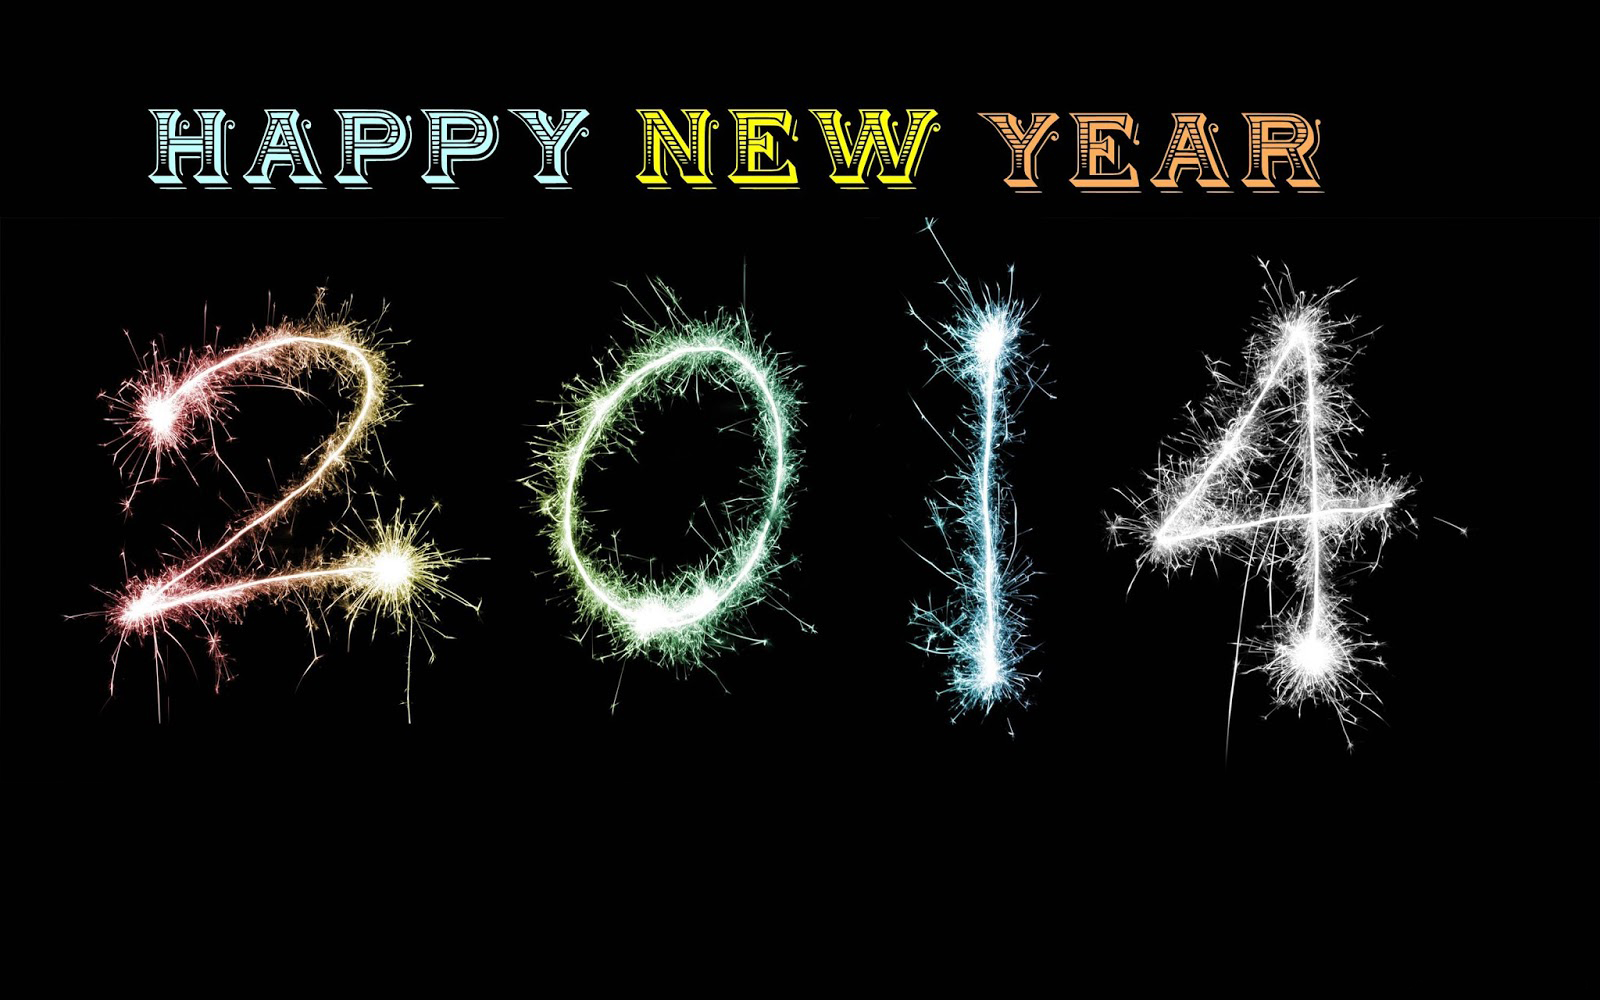 Amazing New Year Wishes Wallpapers: Beautiful Happy New Year 2014 Wallpaper For Greetings